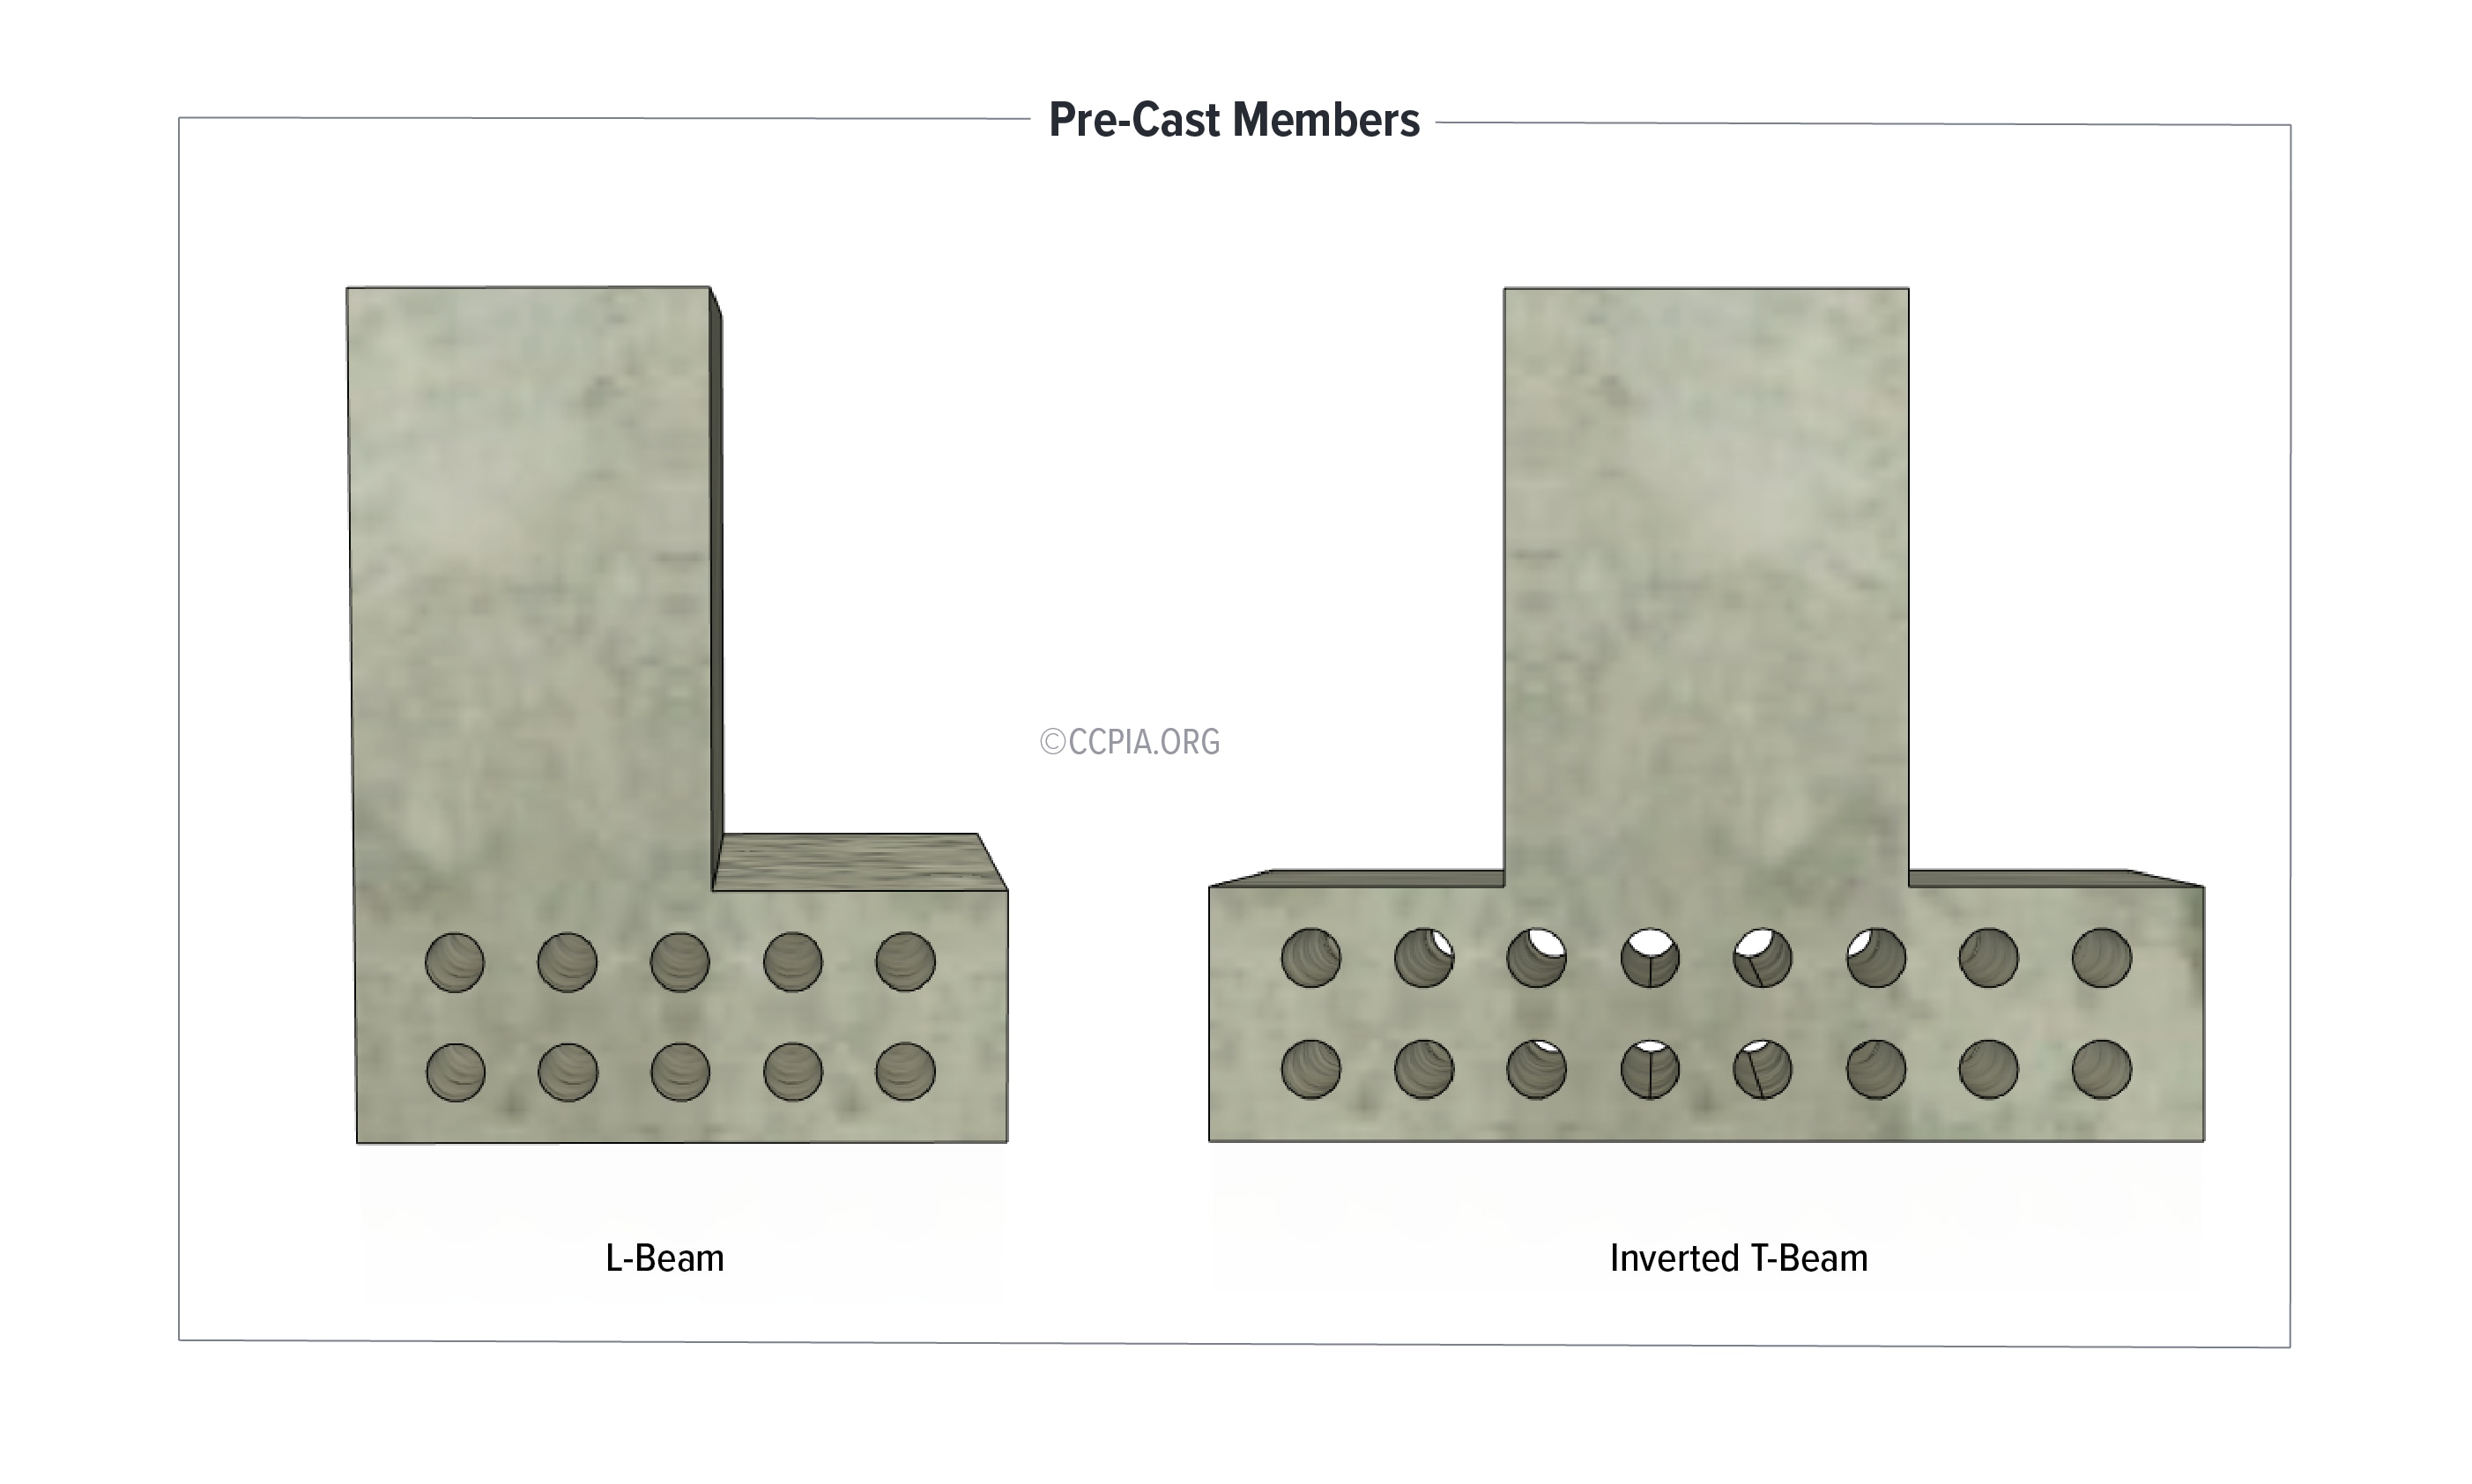 Pre-Cast Concrete Members: L-Beam and Inverted T-Beam